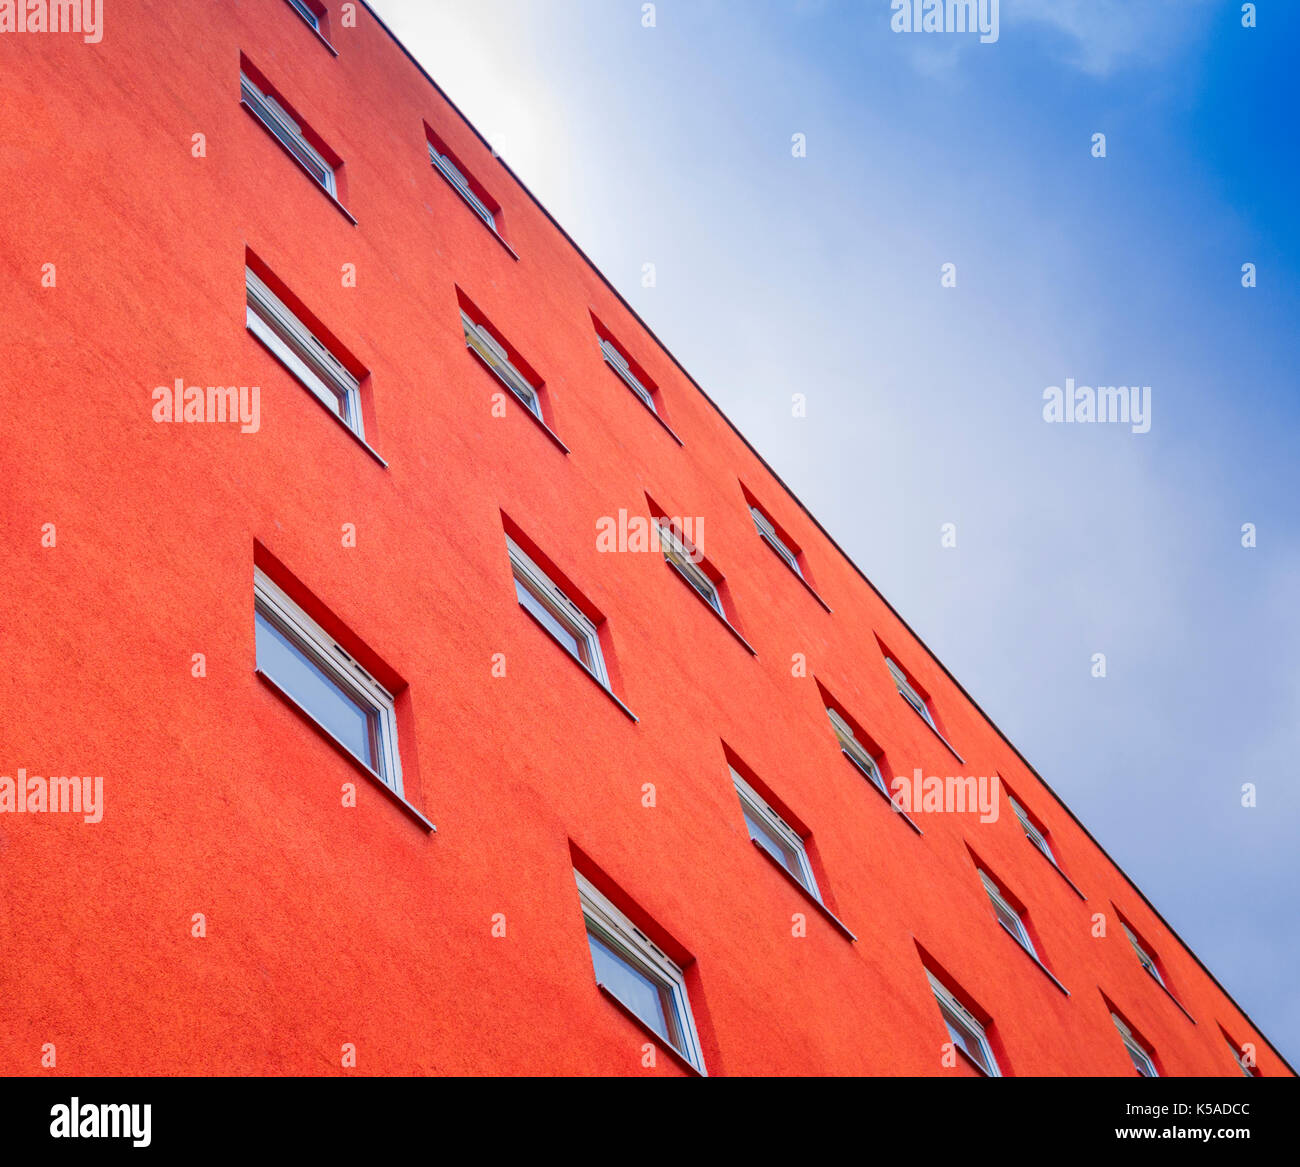 Abstract View of Red Painted Building - Stock Image